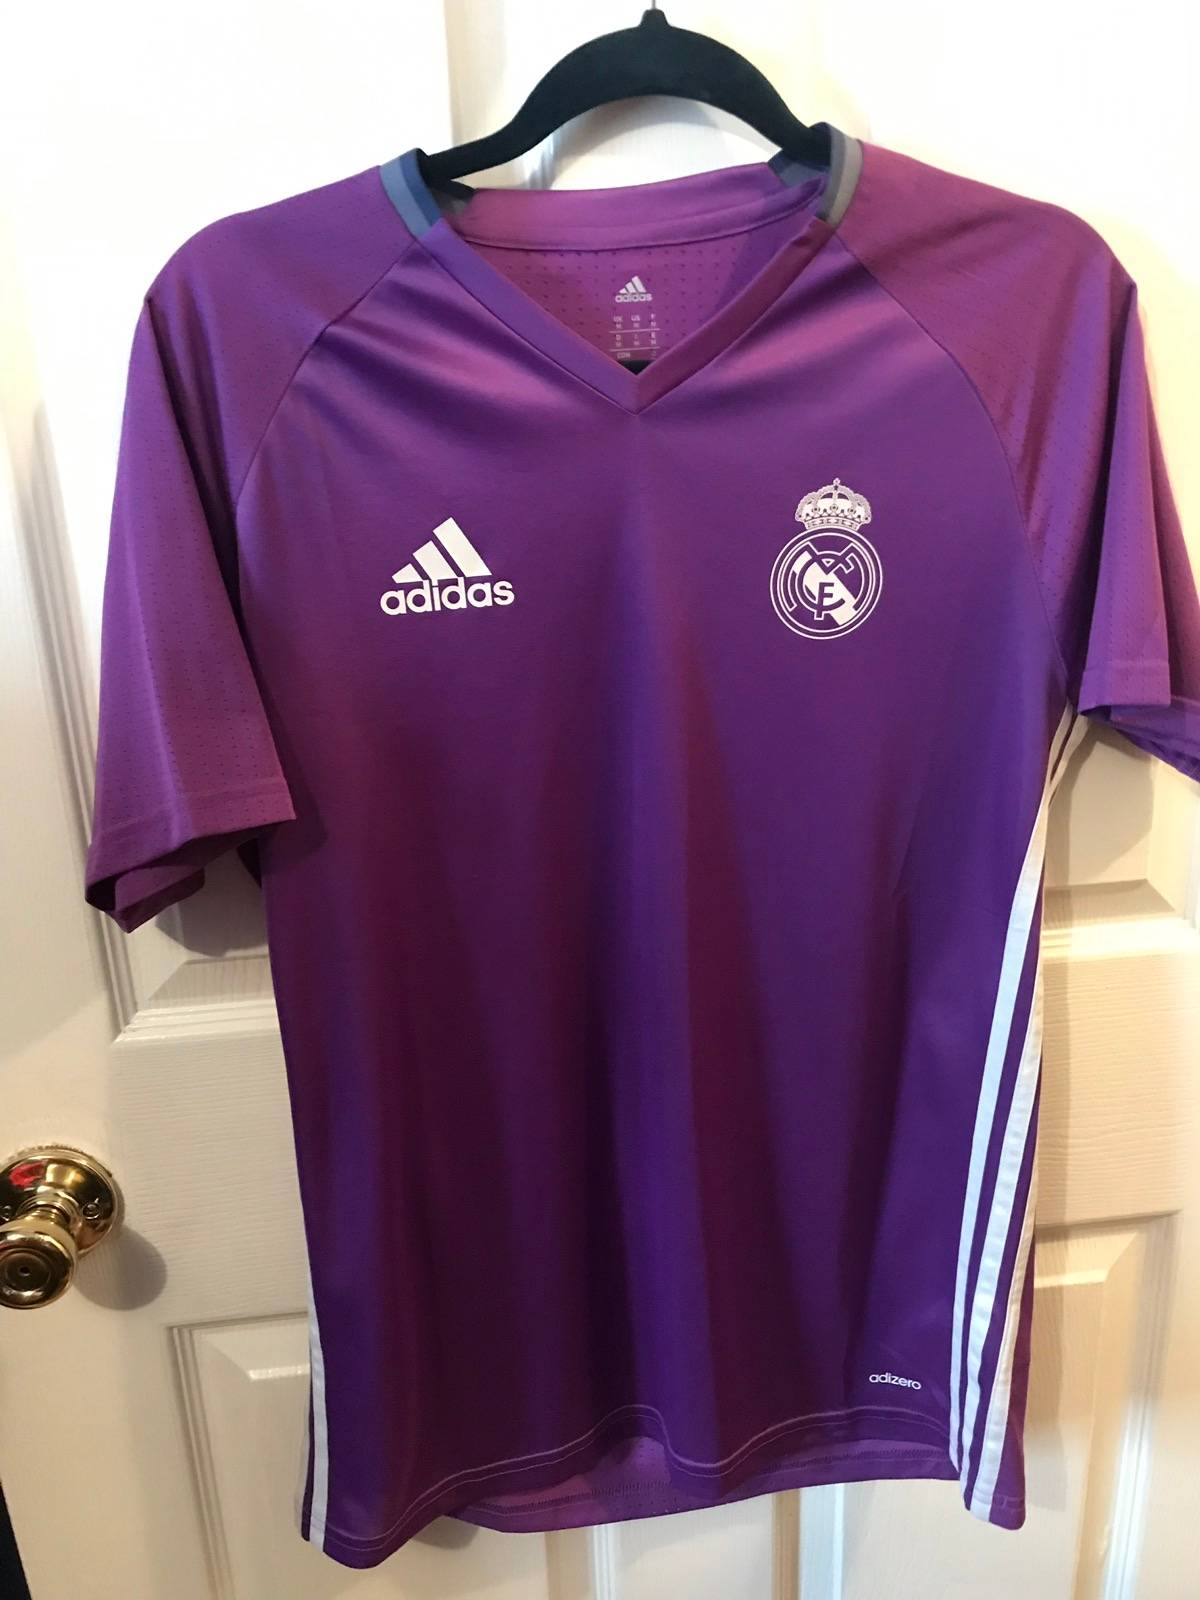 new product 95fcc 5f327 Adidas × Real Madrid × Soccer Jersey Real Madrid Adidas Training Jersey  Purple Size M $40